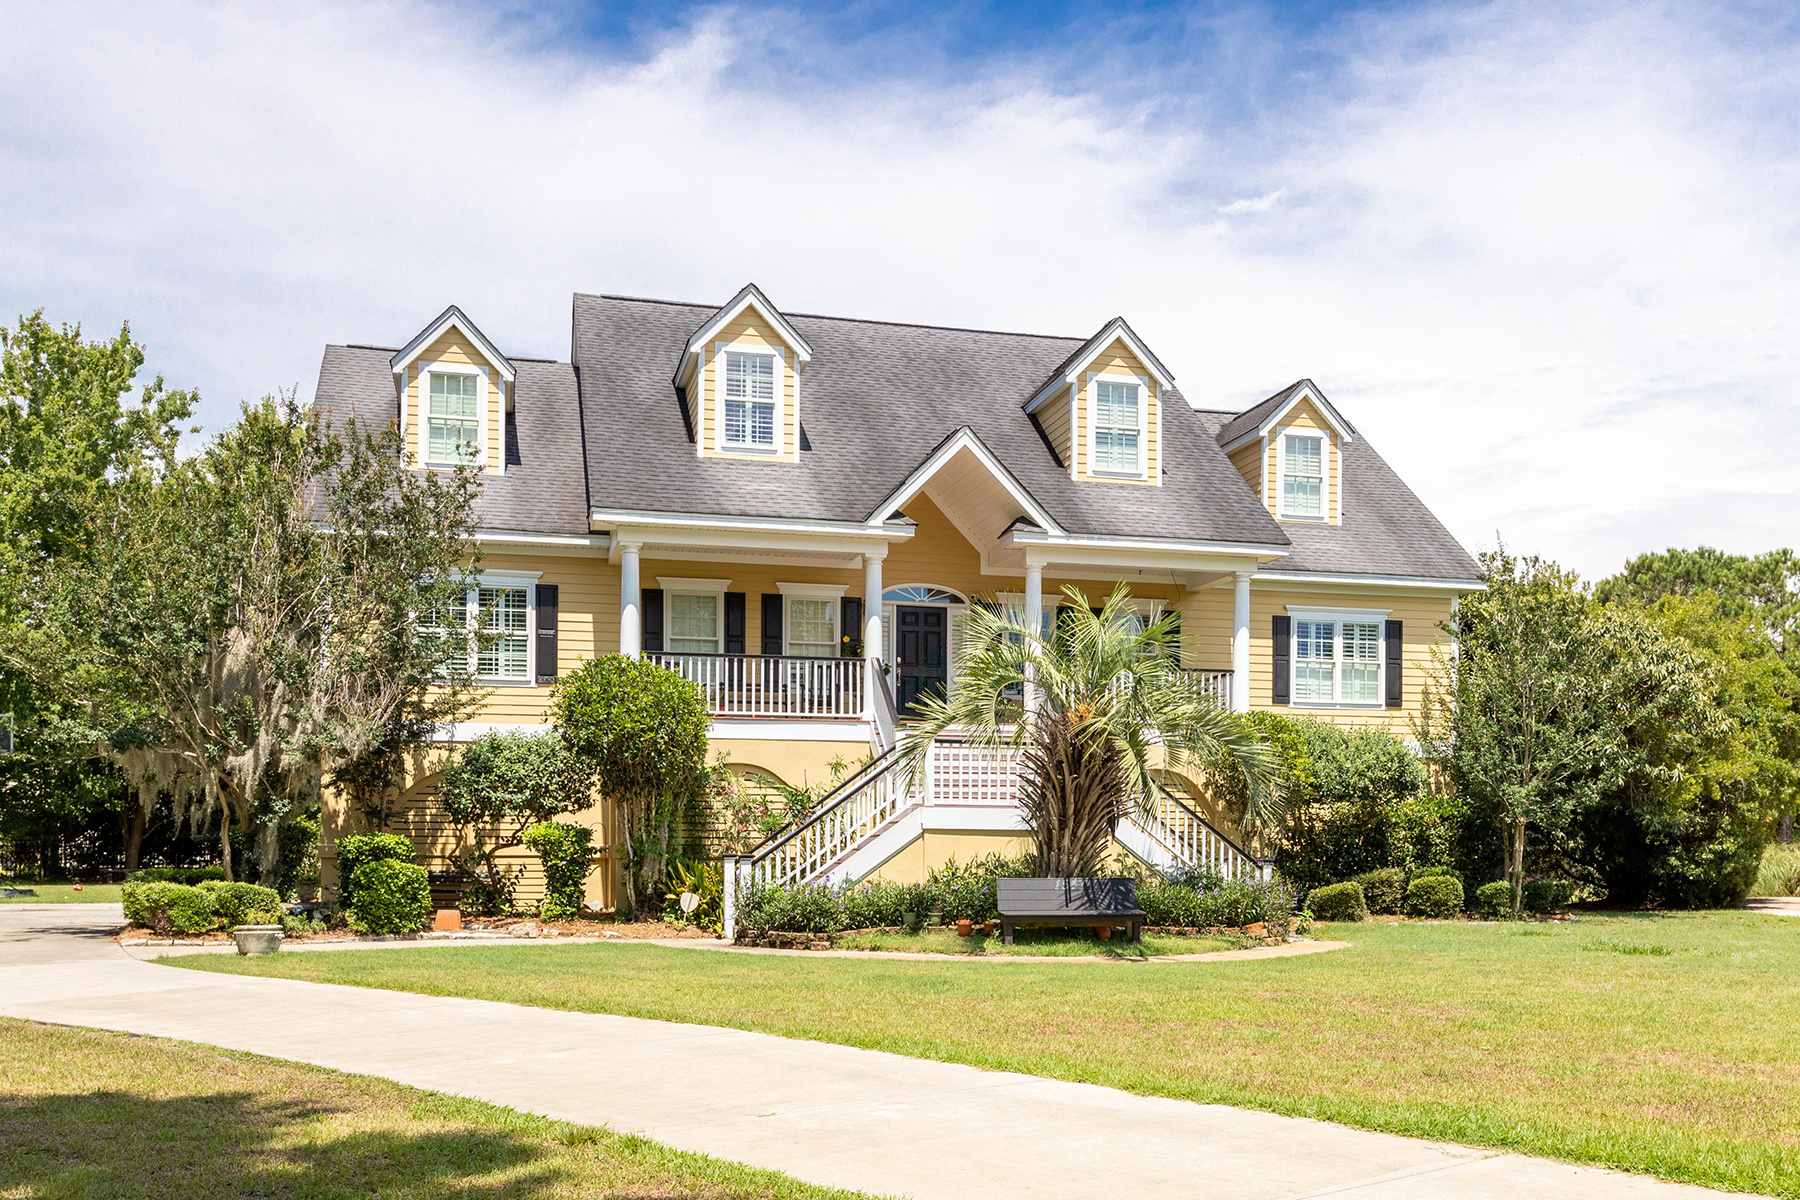 Single Family Homes for Active at 1547 Regimental Lane Johns Island, South Carolina 29455 United States